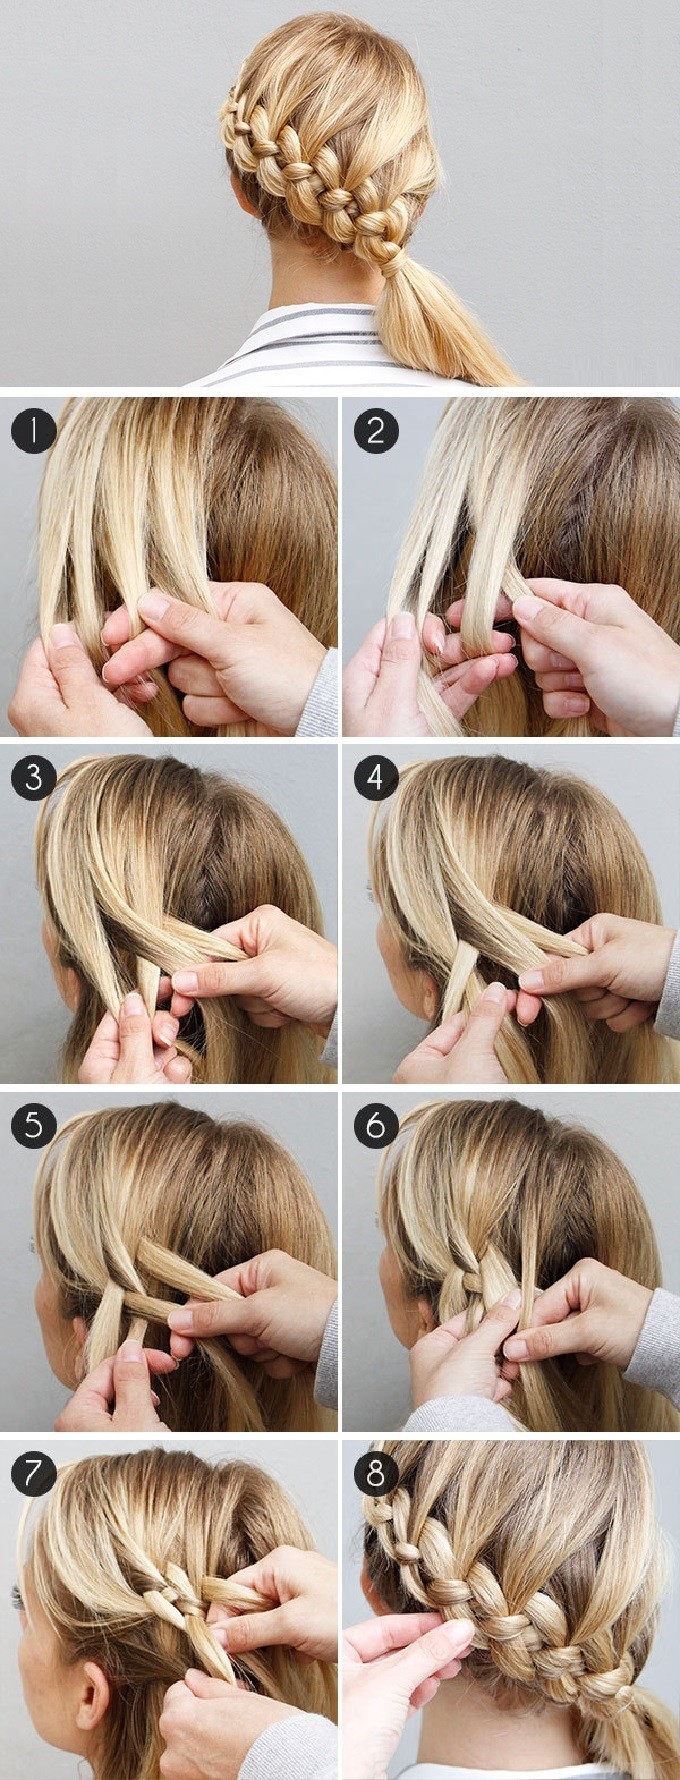 c86f439b2 Popular on Pinterest: The 4-Strand Dutch Braid - Hair How To - Livingly